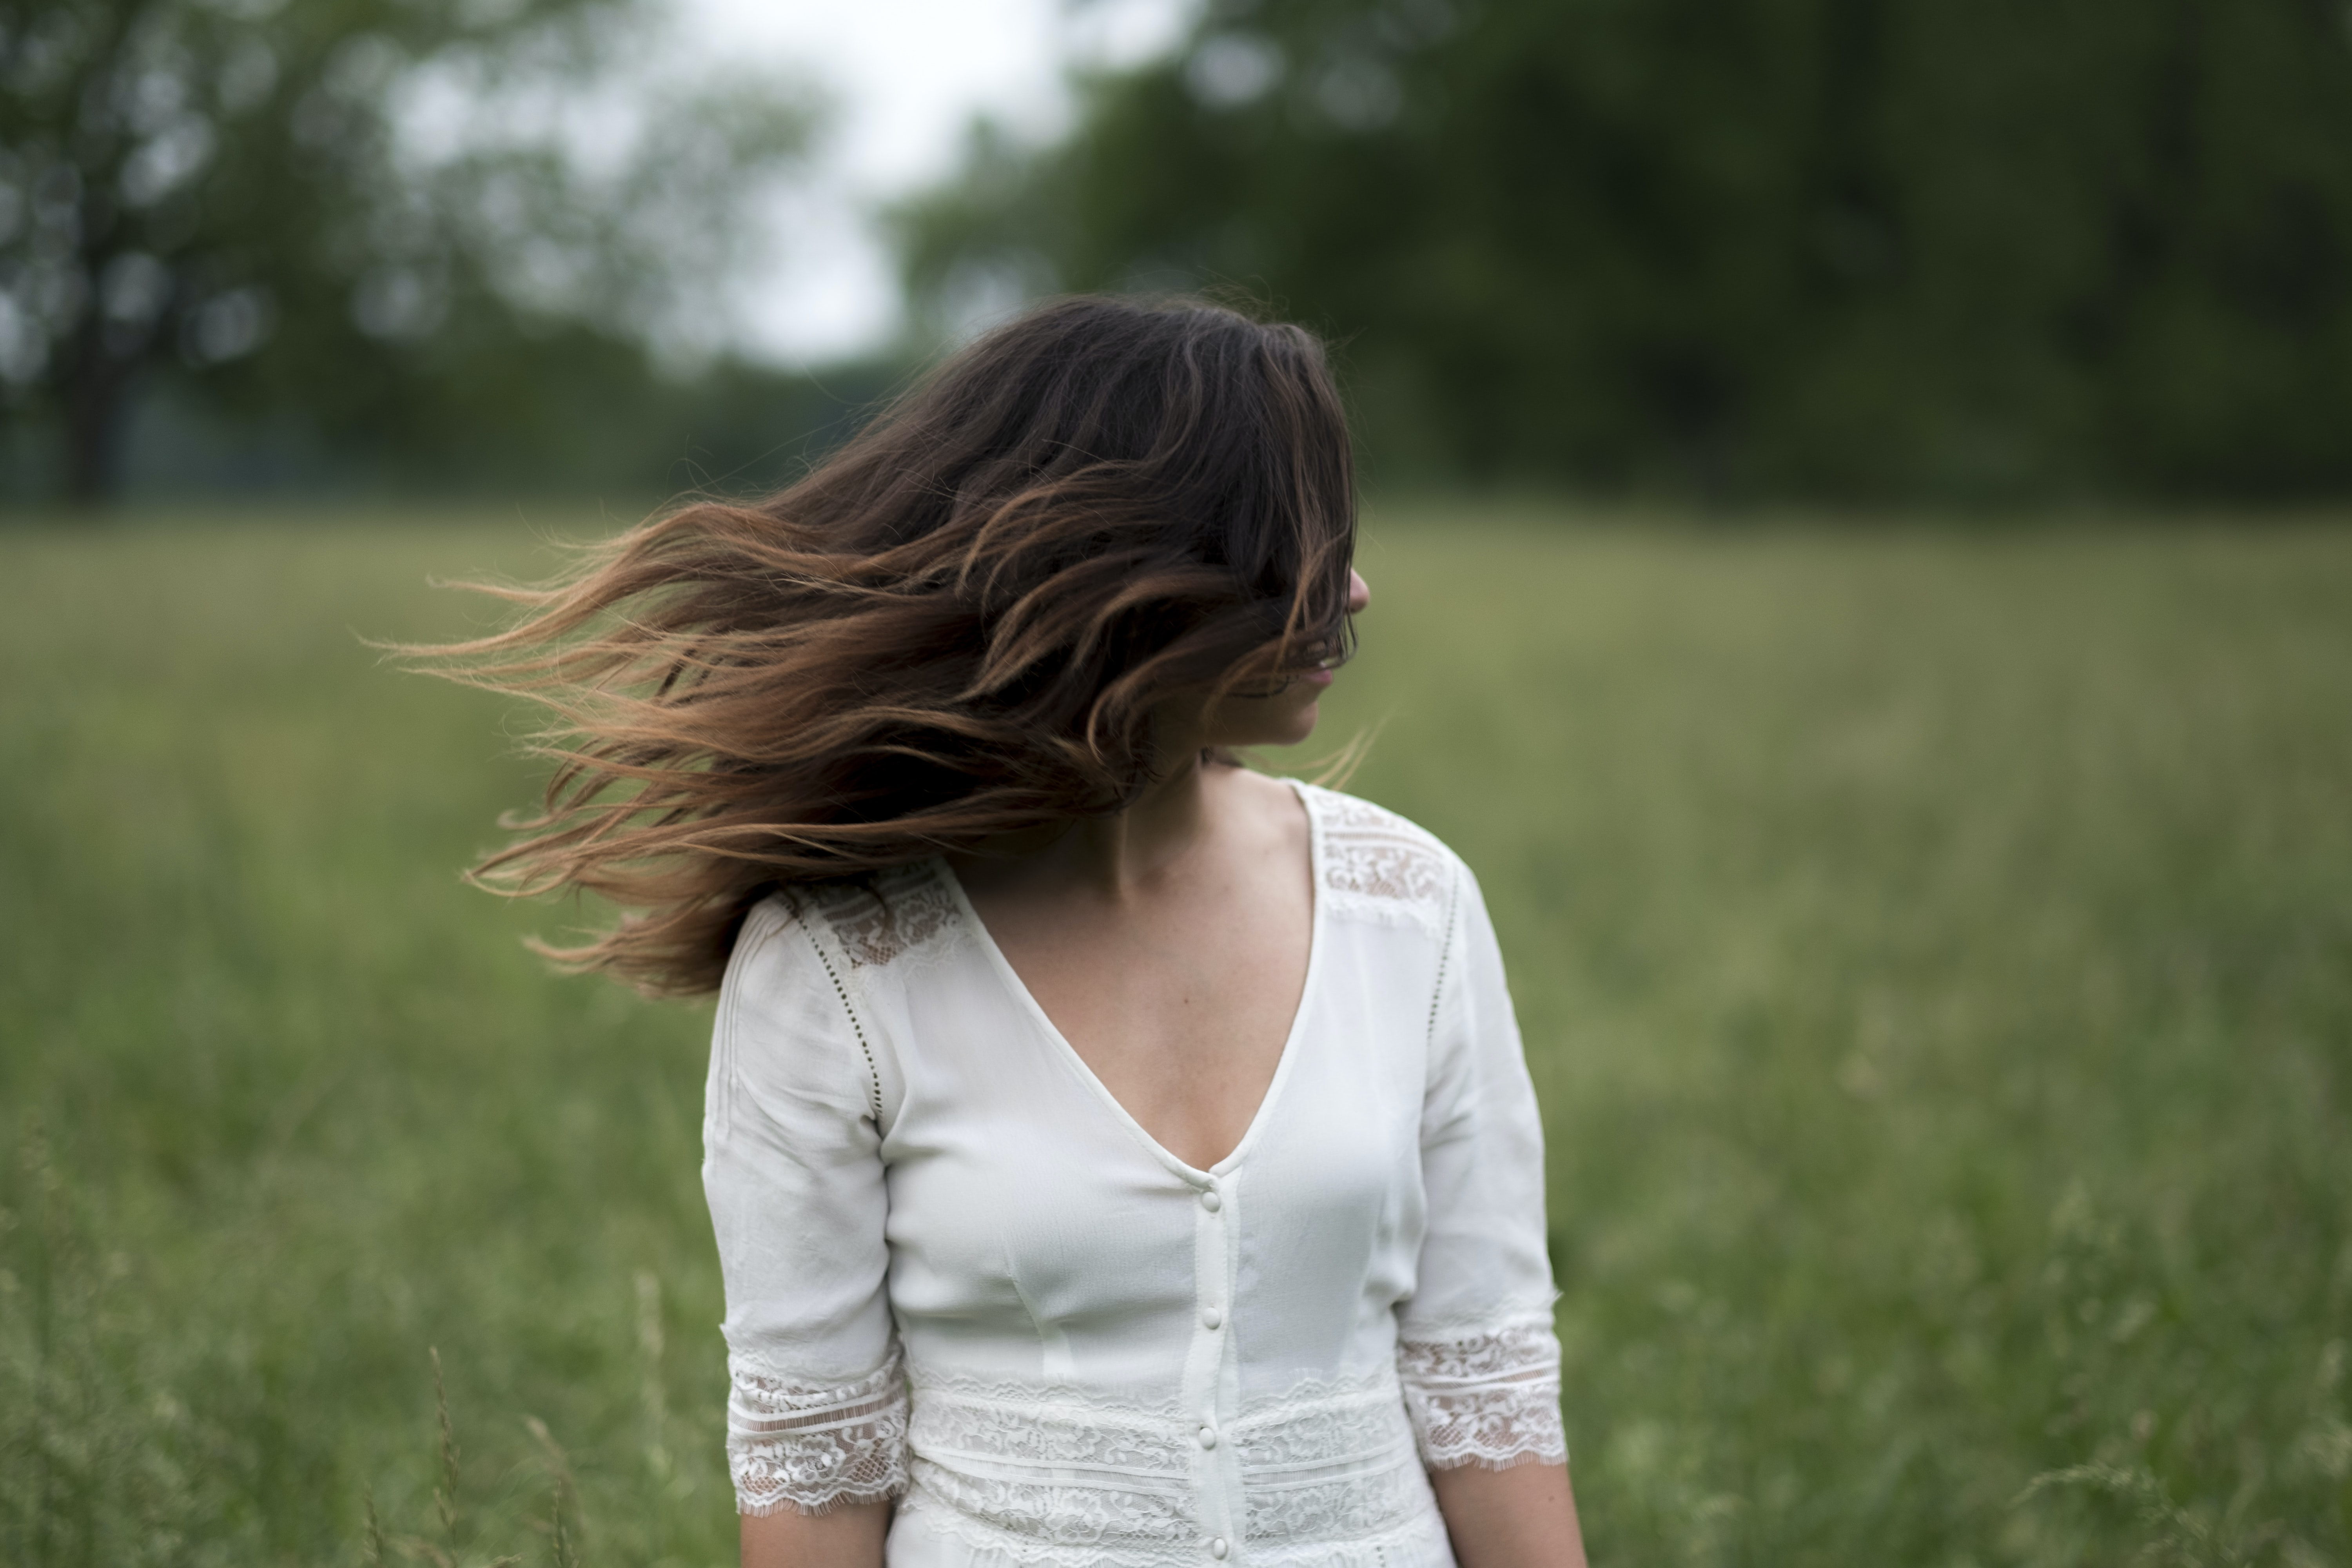 Woman in a white shirt with windblown hair in a field